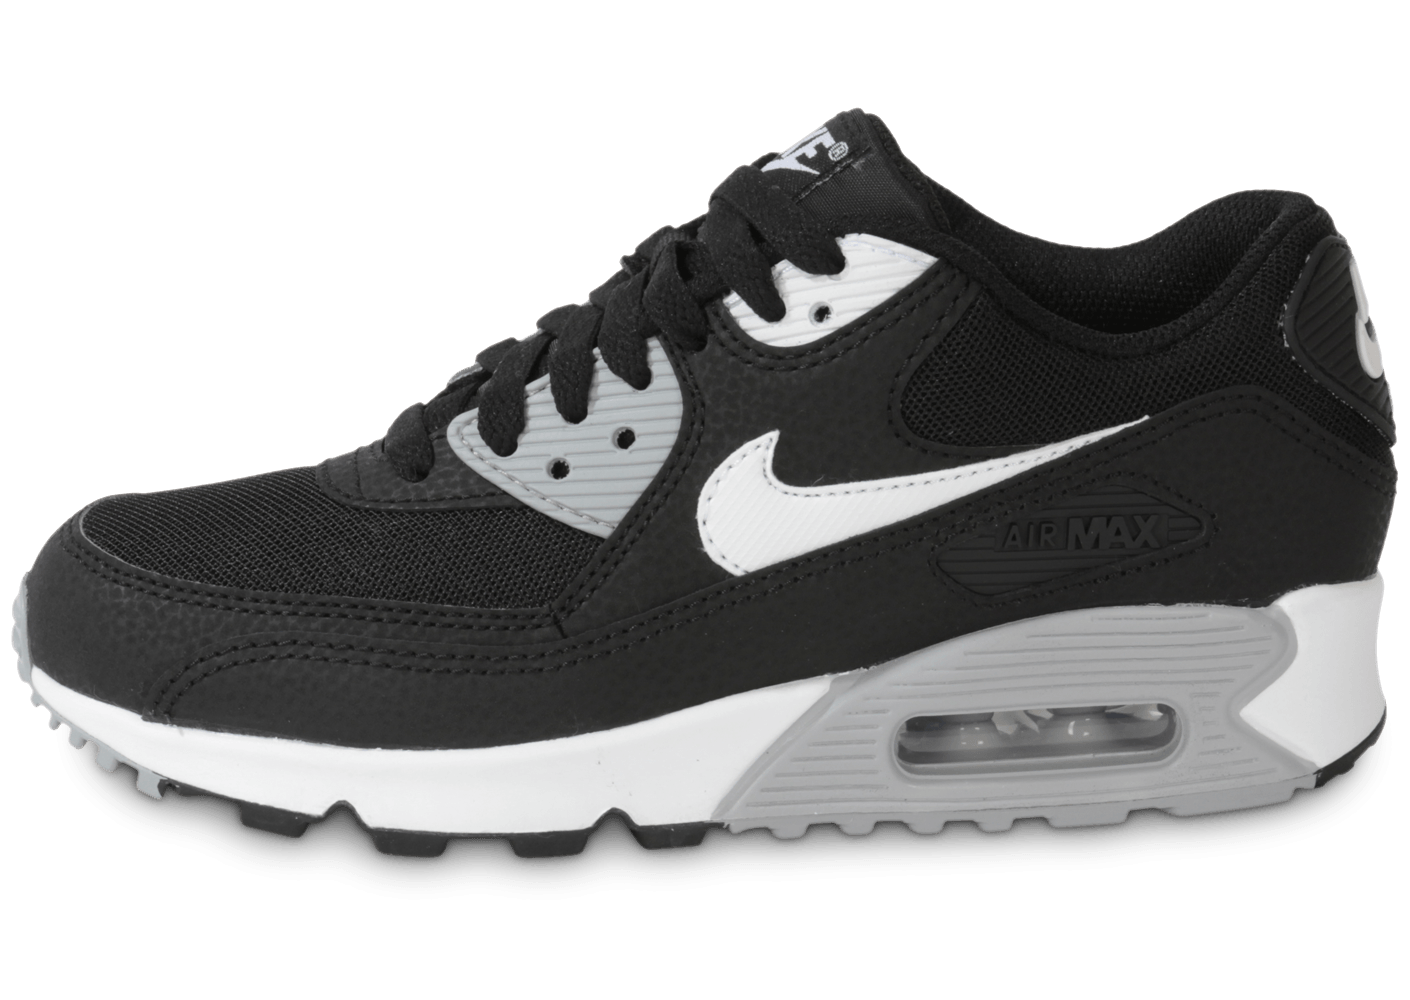 nike air max 90 essential noir blanc chaussures chaussures chausport. Black Bedroom Furniture Sets. Home Design Ideas